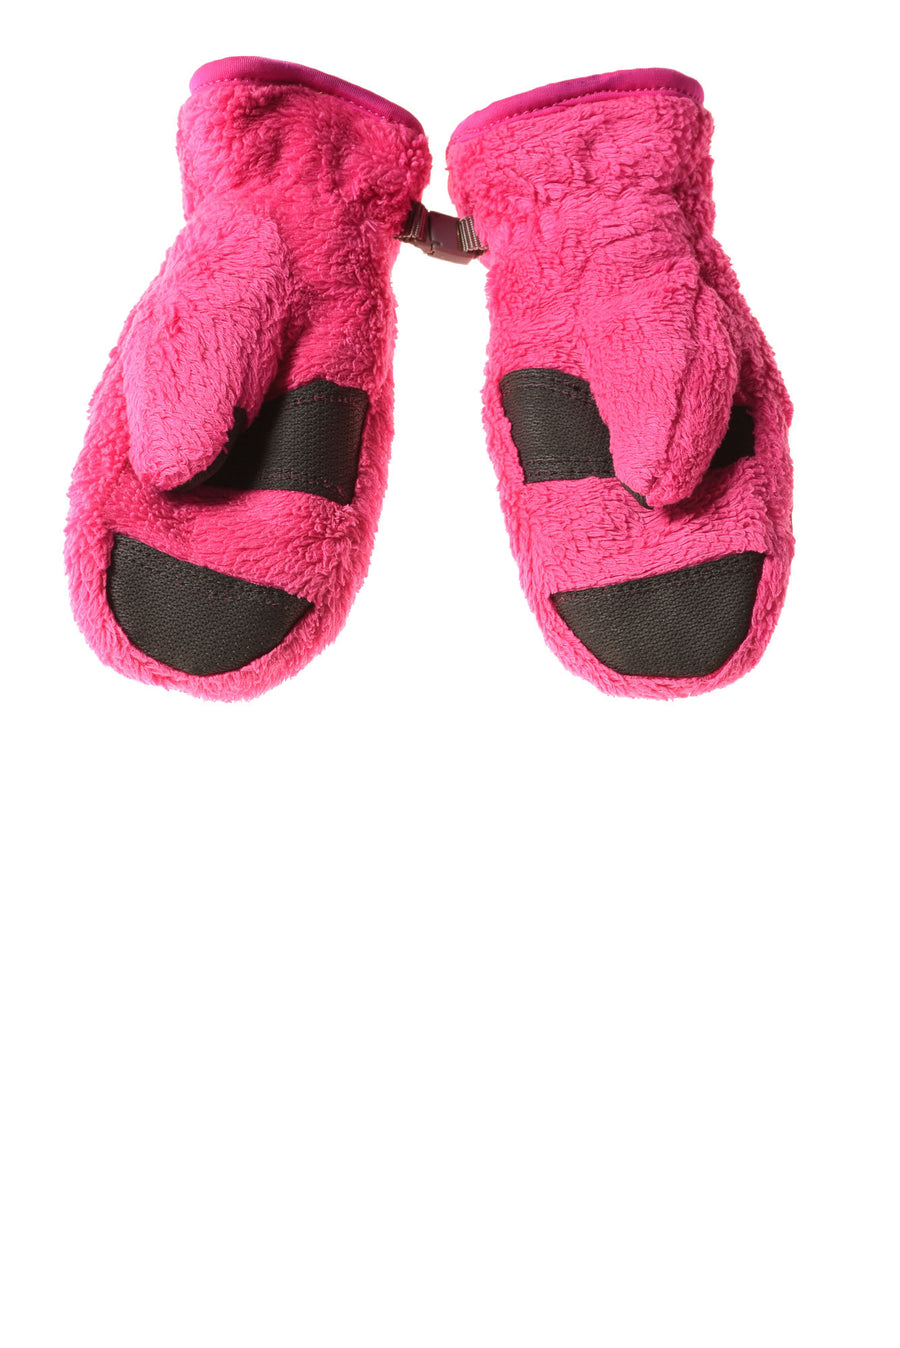 Toddler Girl's Gloves By Head